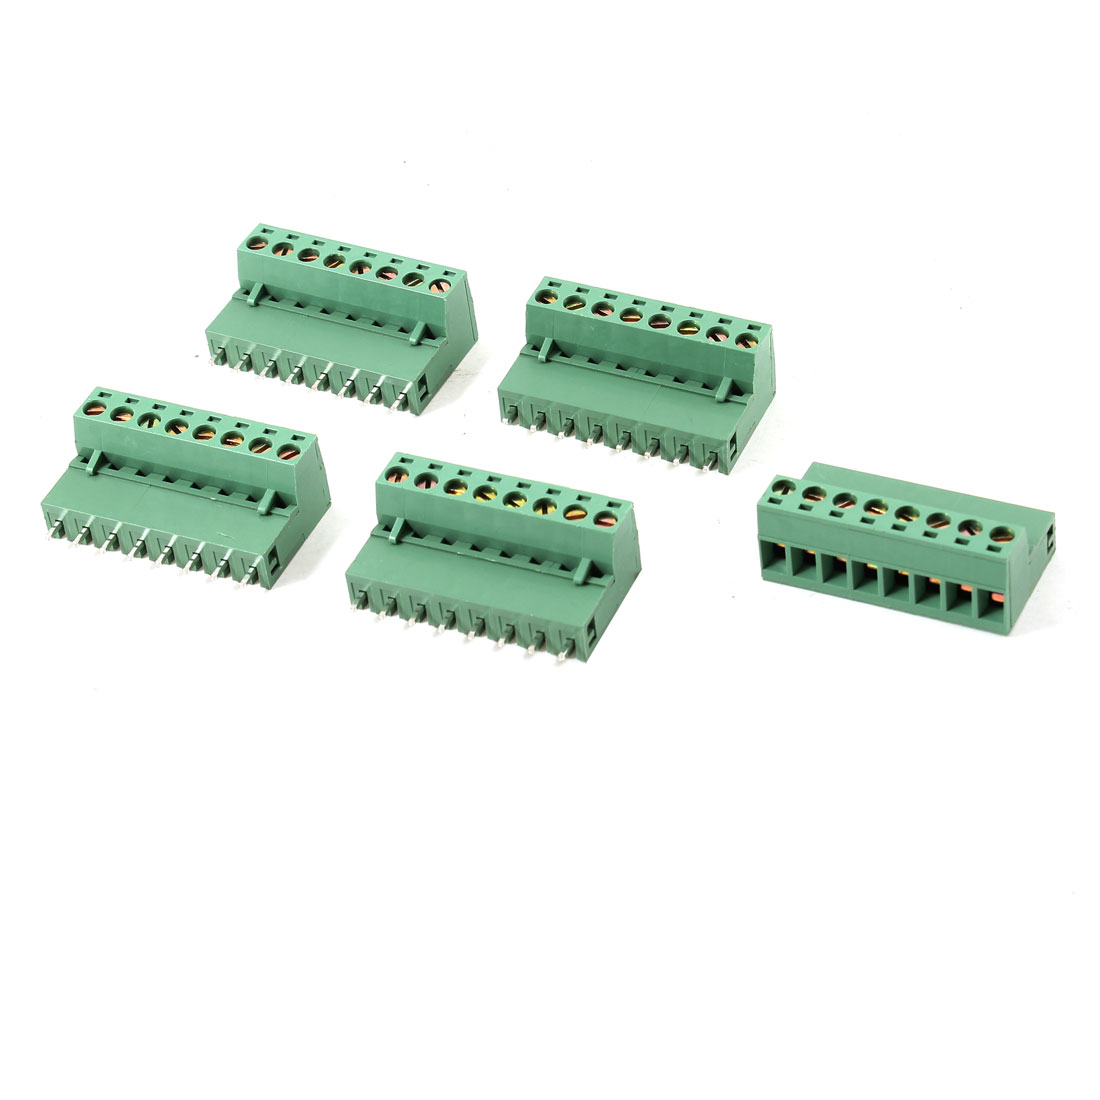 5 Pcs 300V 16A 5.08mm Pitch 8 Pin Screw Pluggable Terminal Block Green